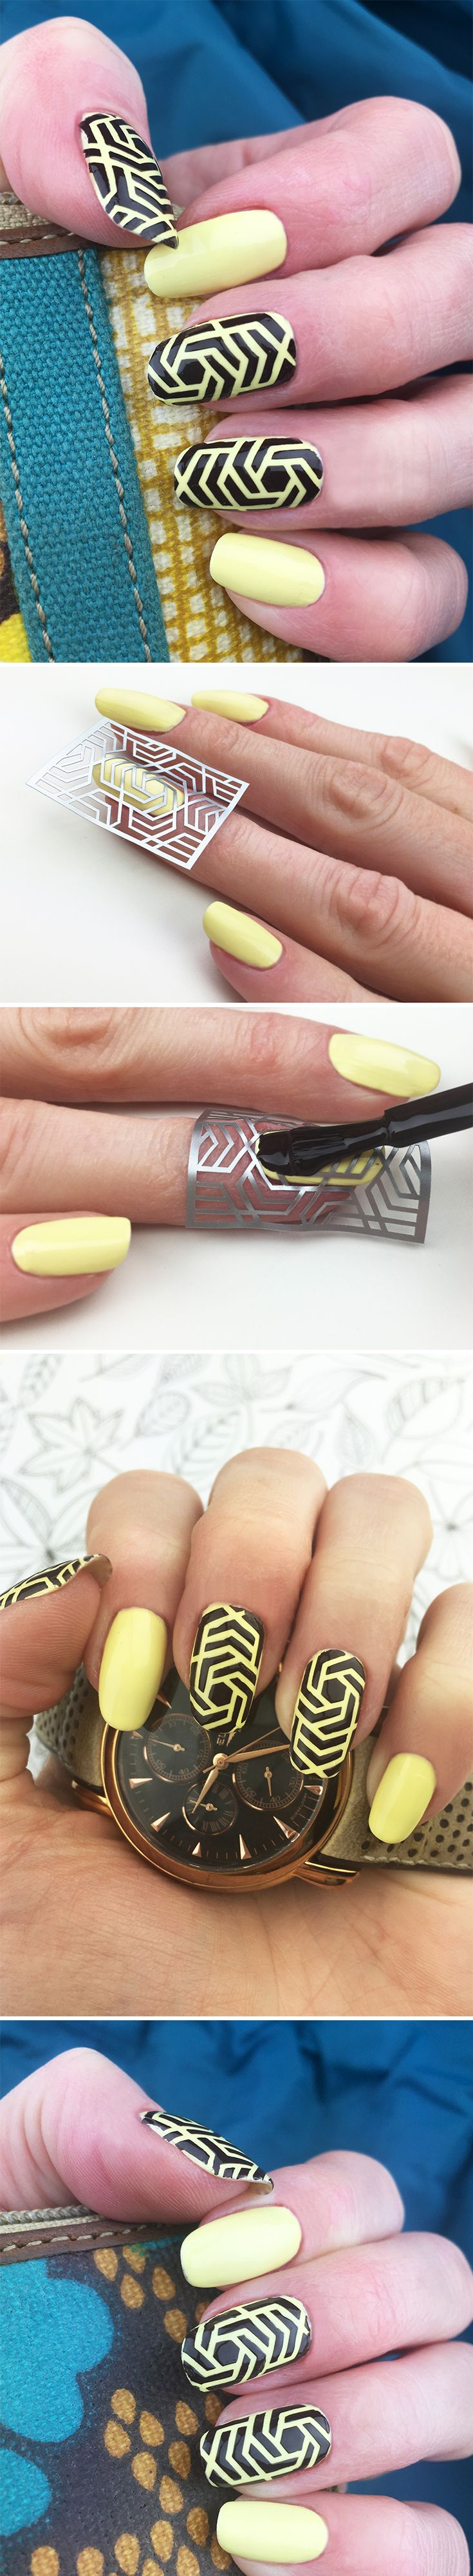 "Nail Stencils design ""Hexagon"" #nailart"